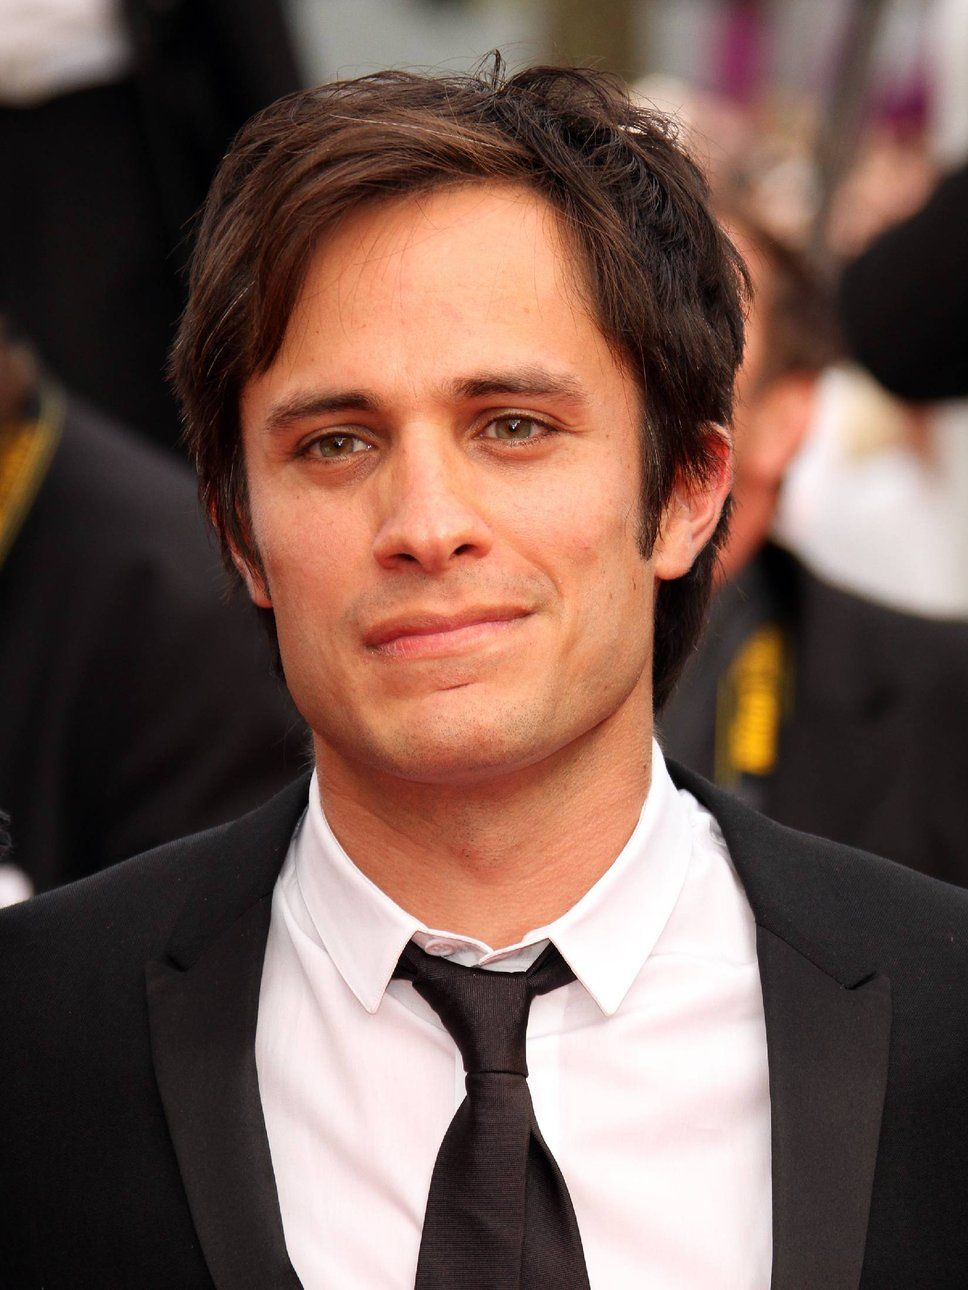 Gael García Bernal es un actor de cine y director mexicano. García ...